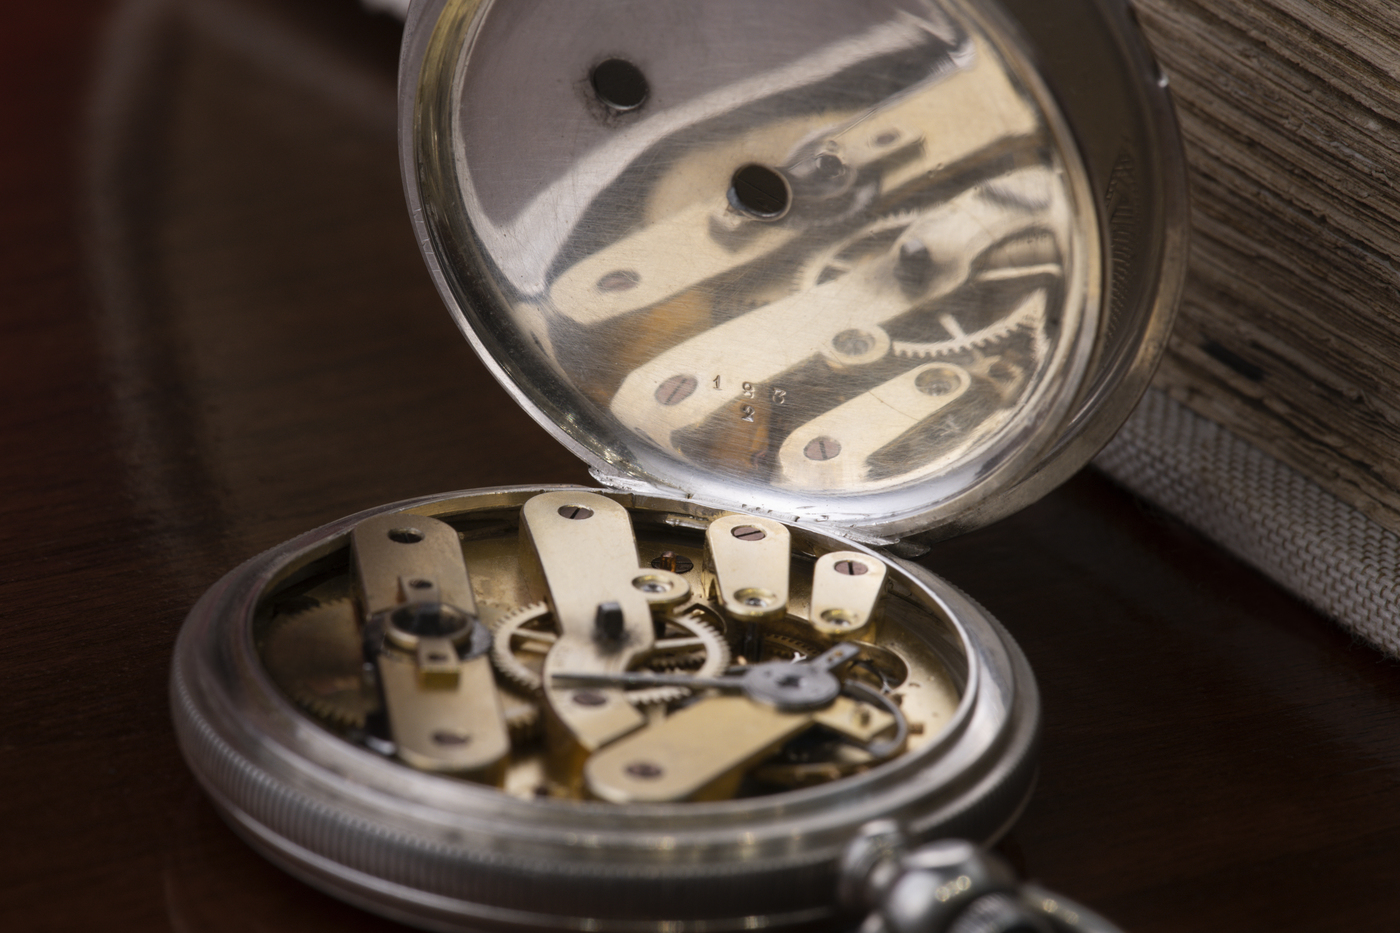 Longines Corporate Event: A collector finds the oldest Longines watch known to date, a historical discovery for the brand 8